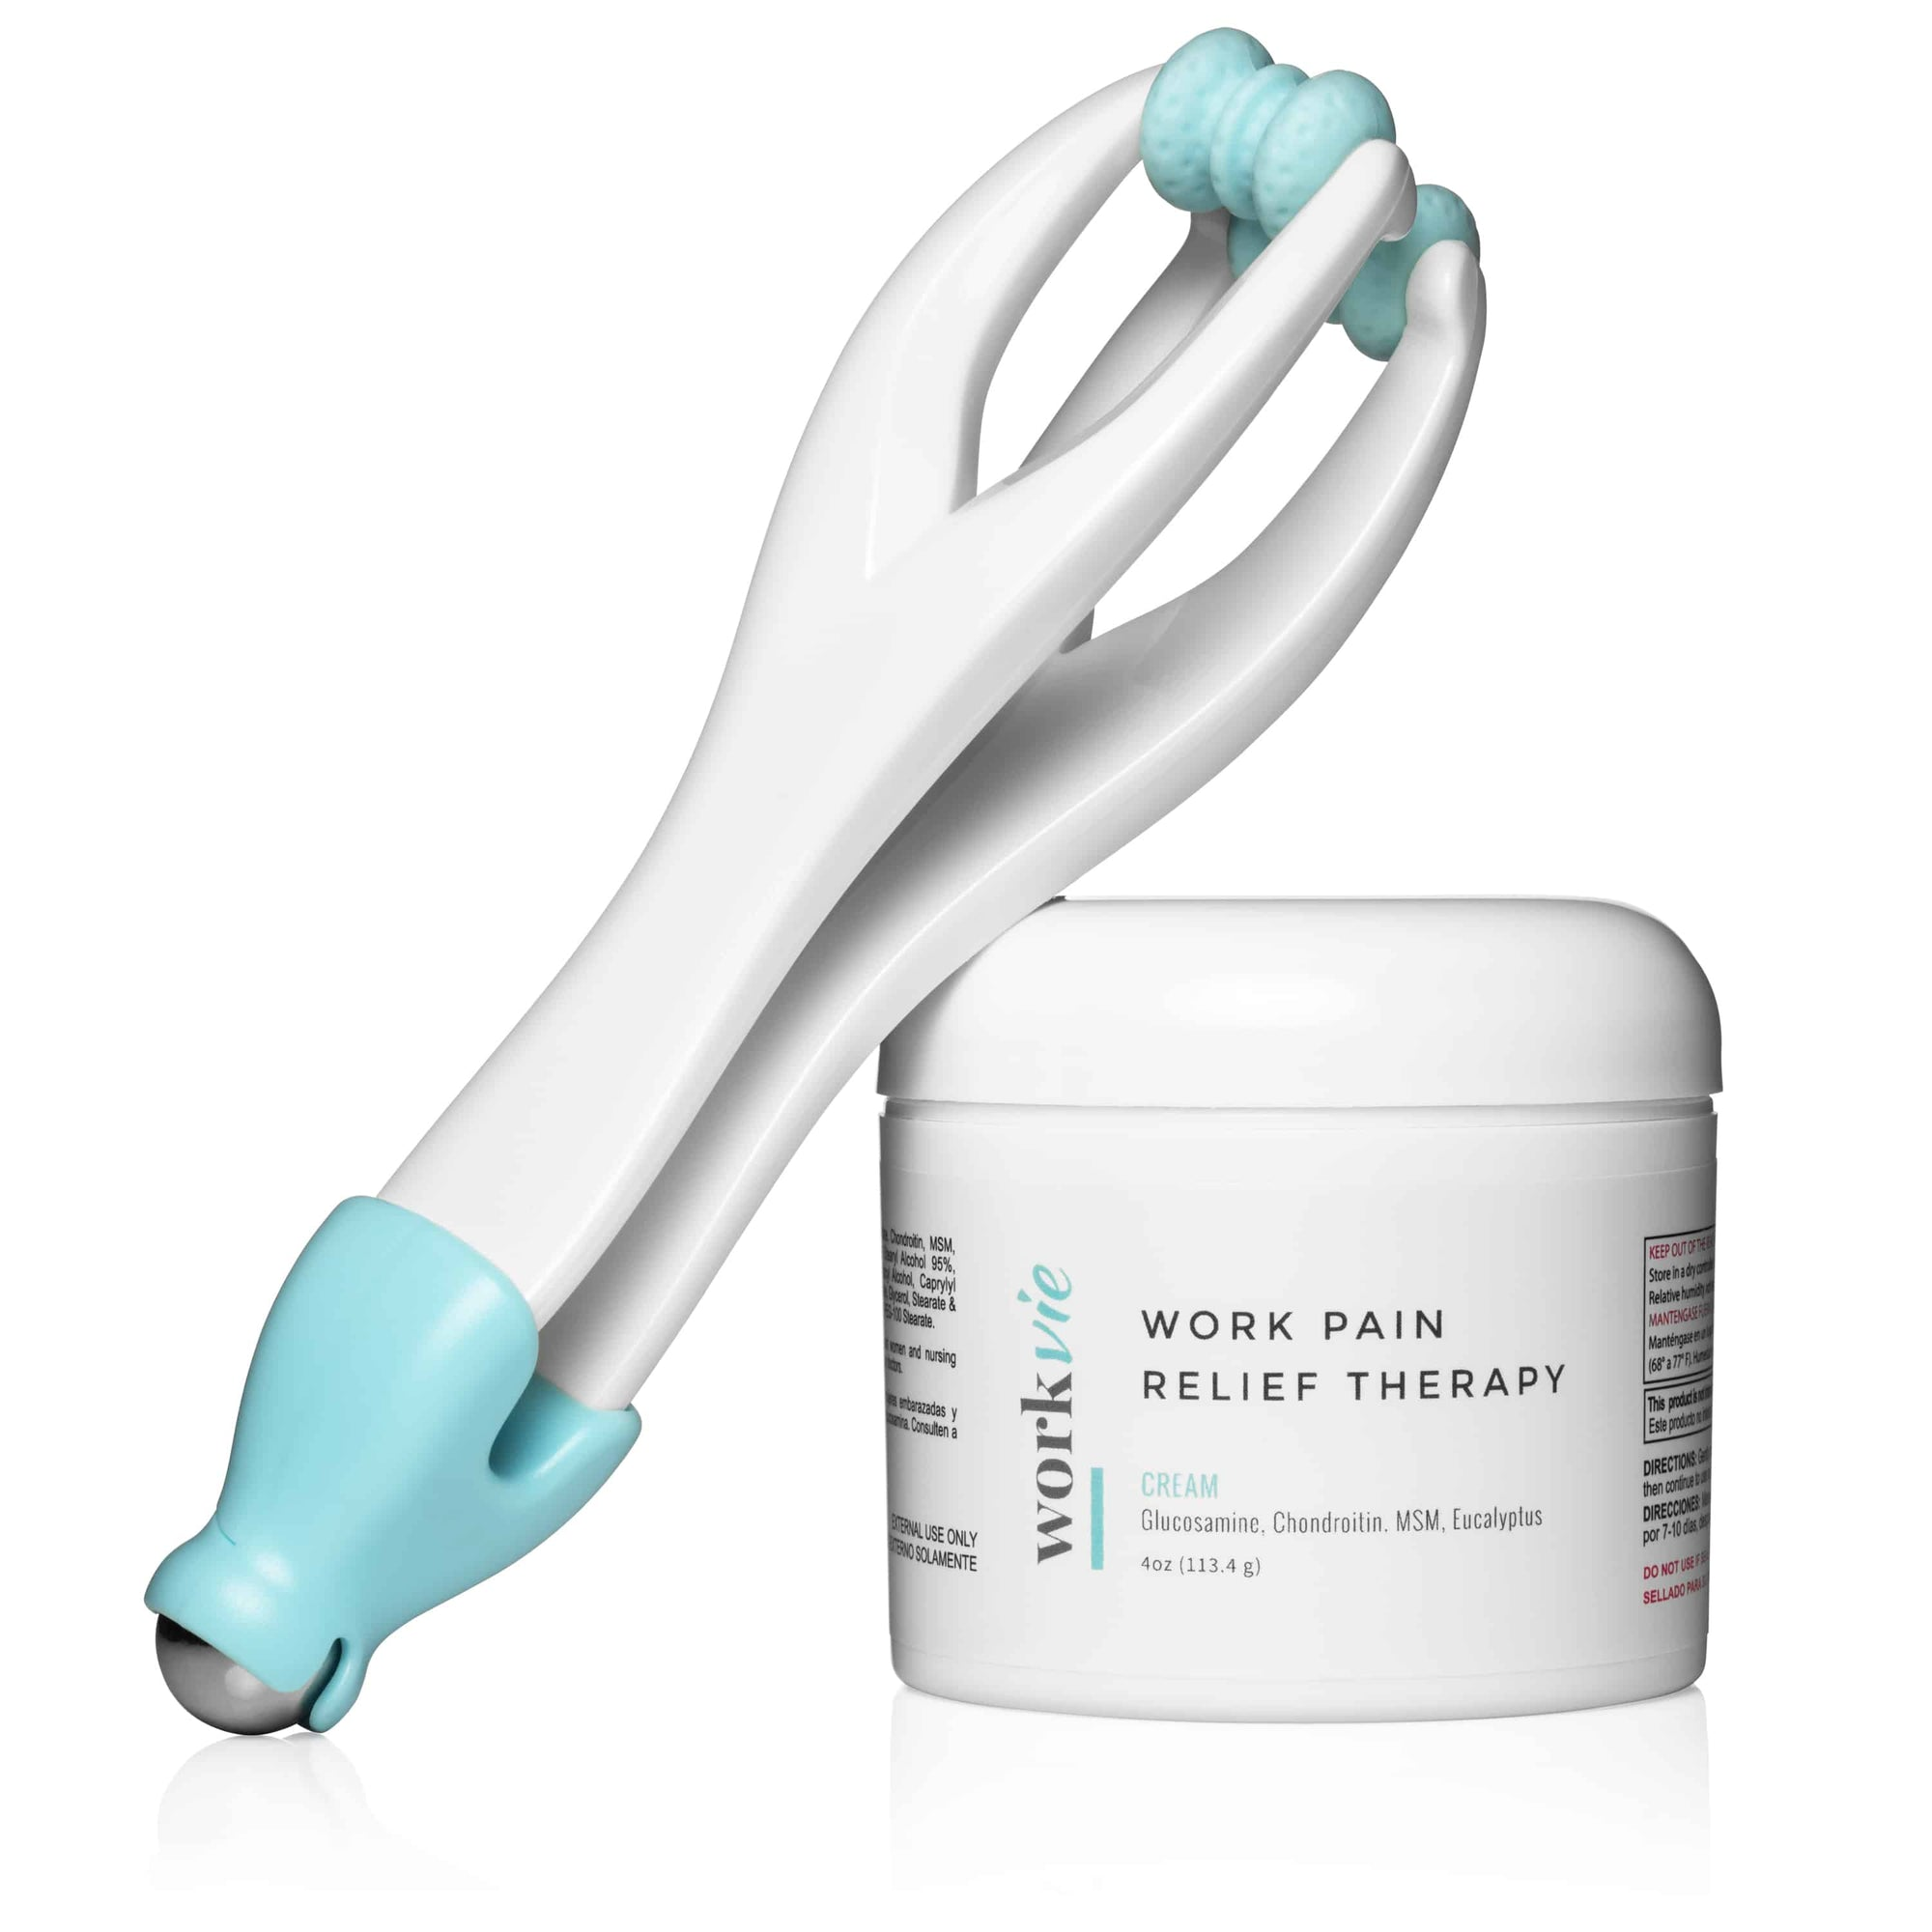 Pain Relief Cream and Finger Massager for Carpal Tunnel, Arthritis, Kim Kardashian Wrist- Workvie Work Wellness